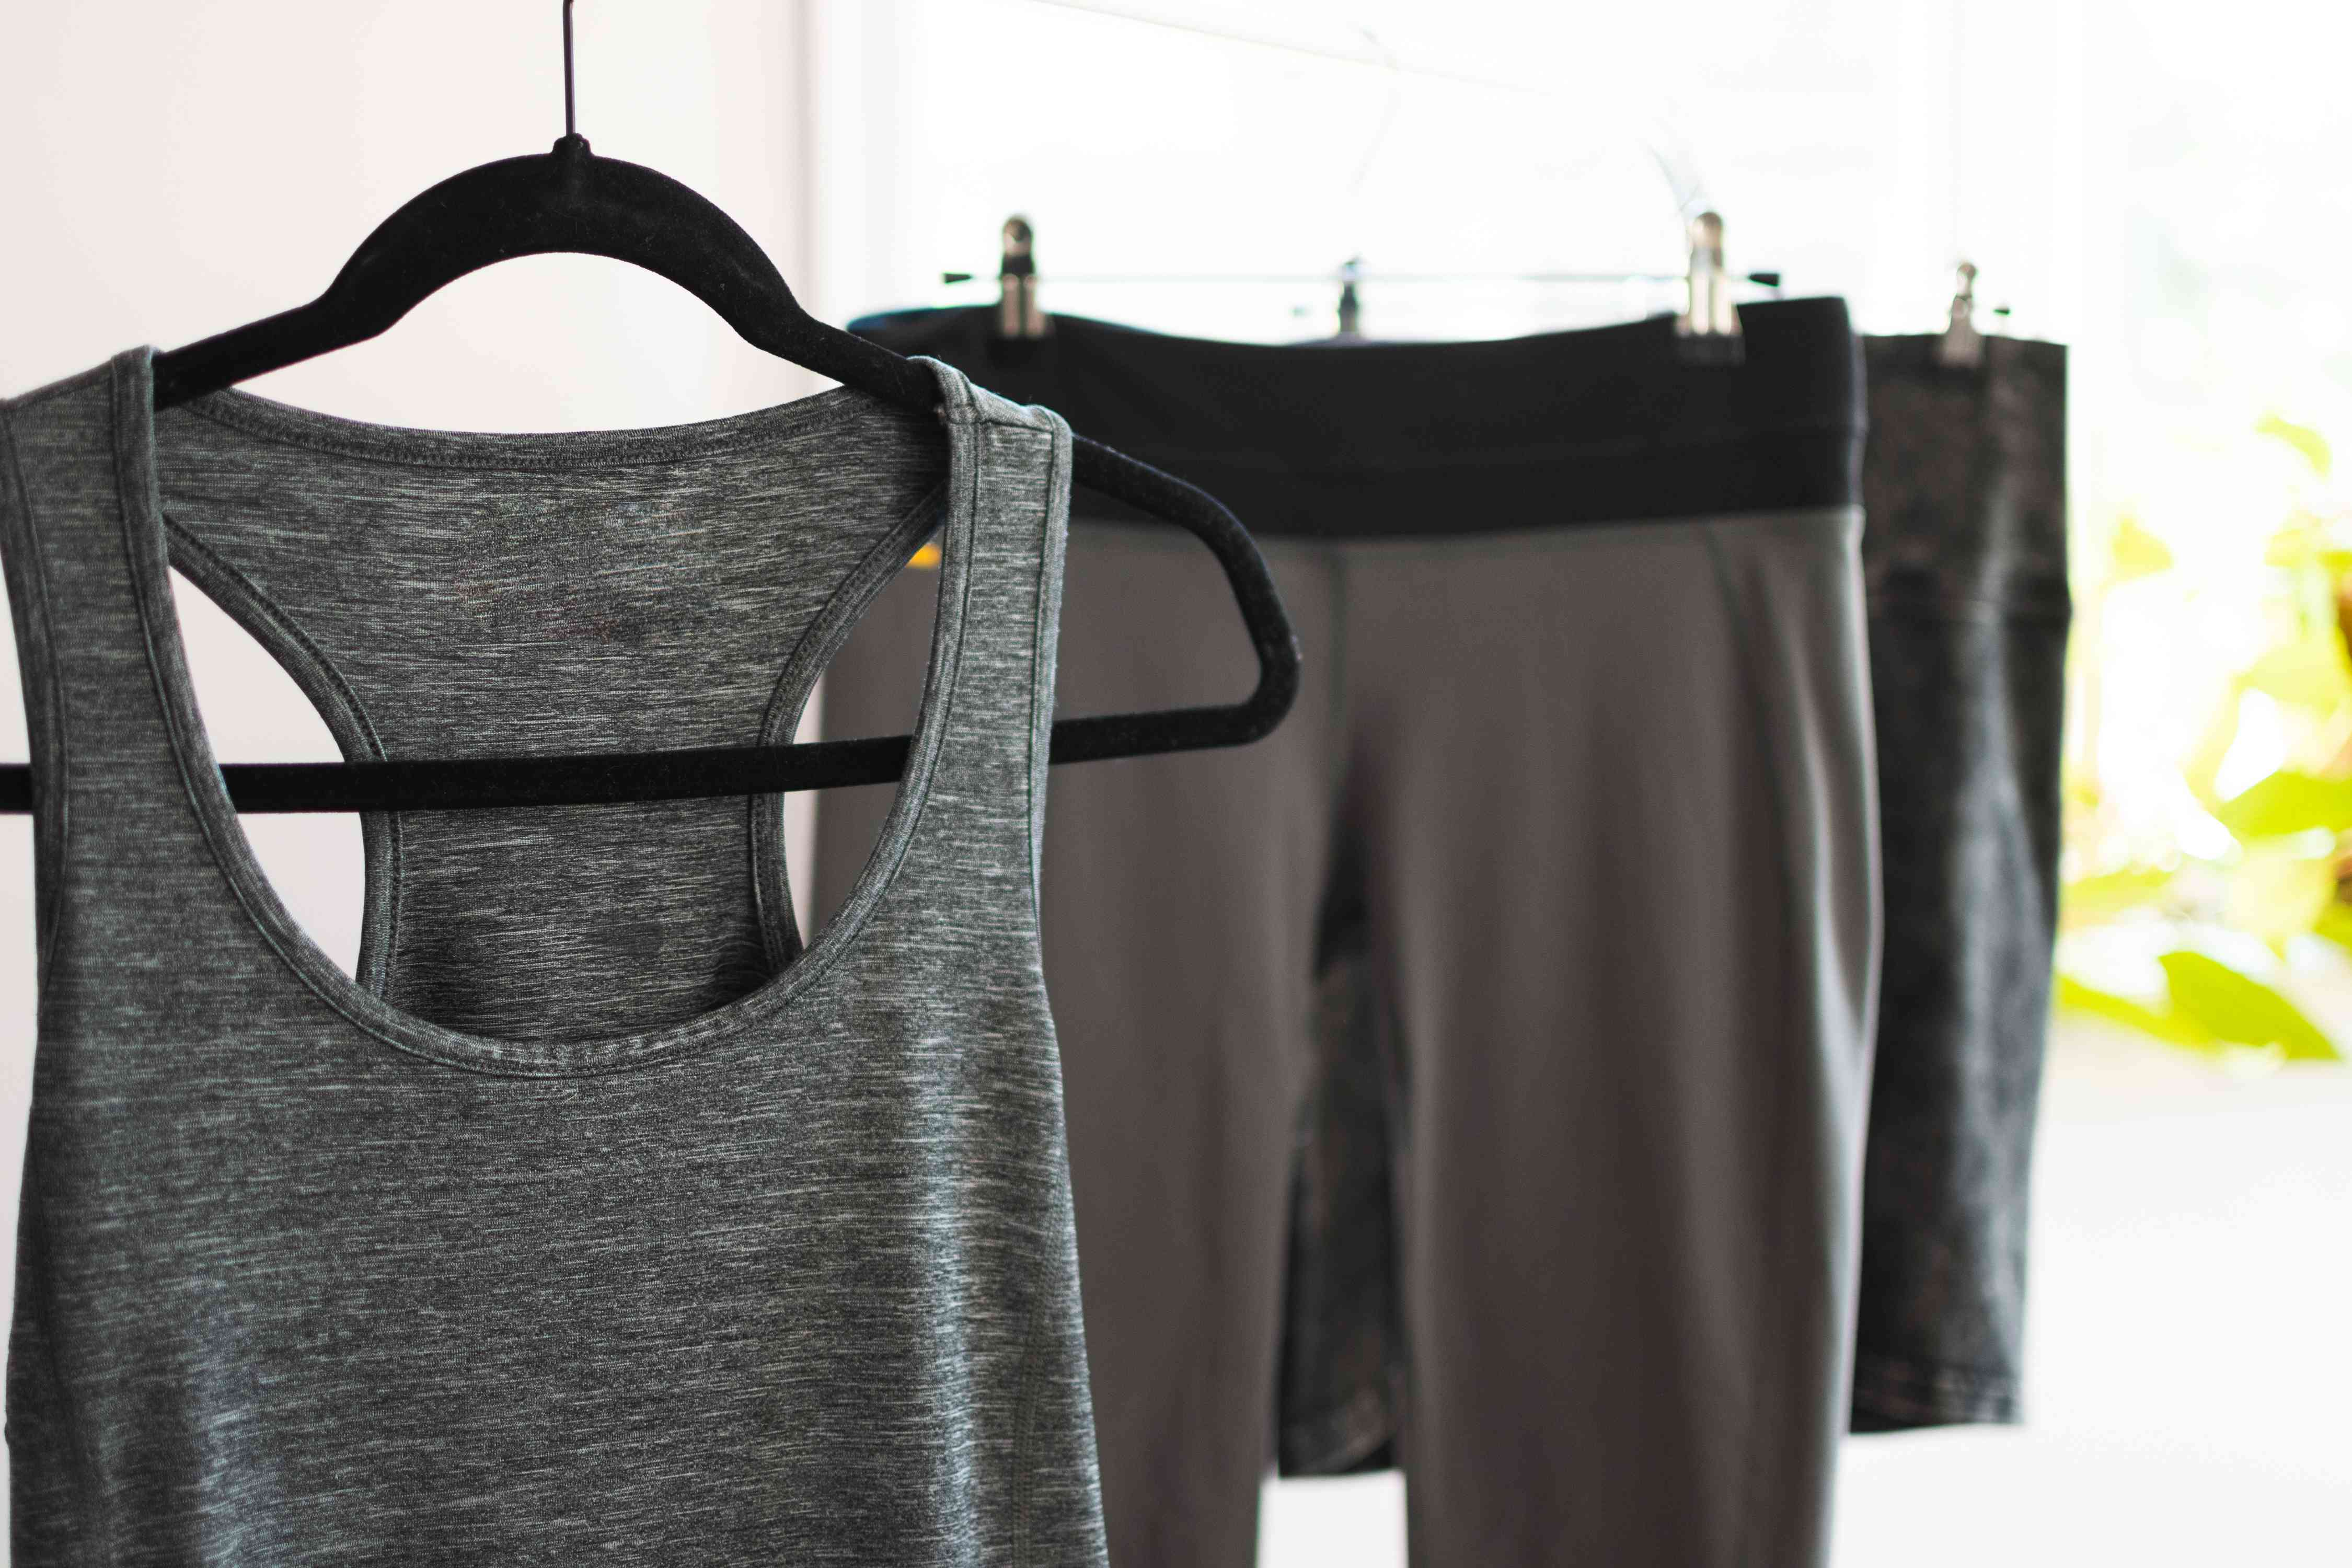 Olefin gray workout top and pants on hangers